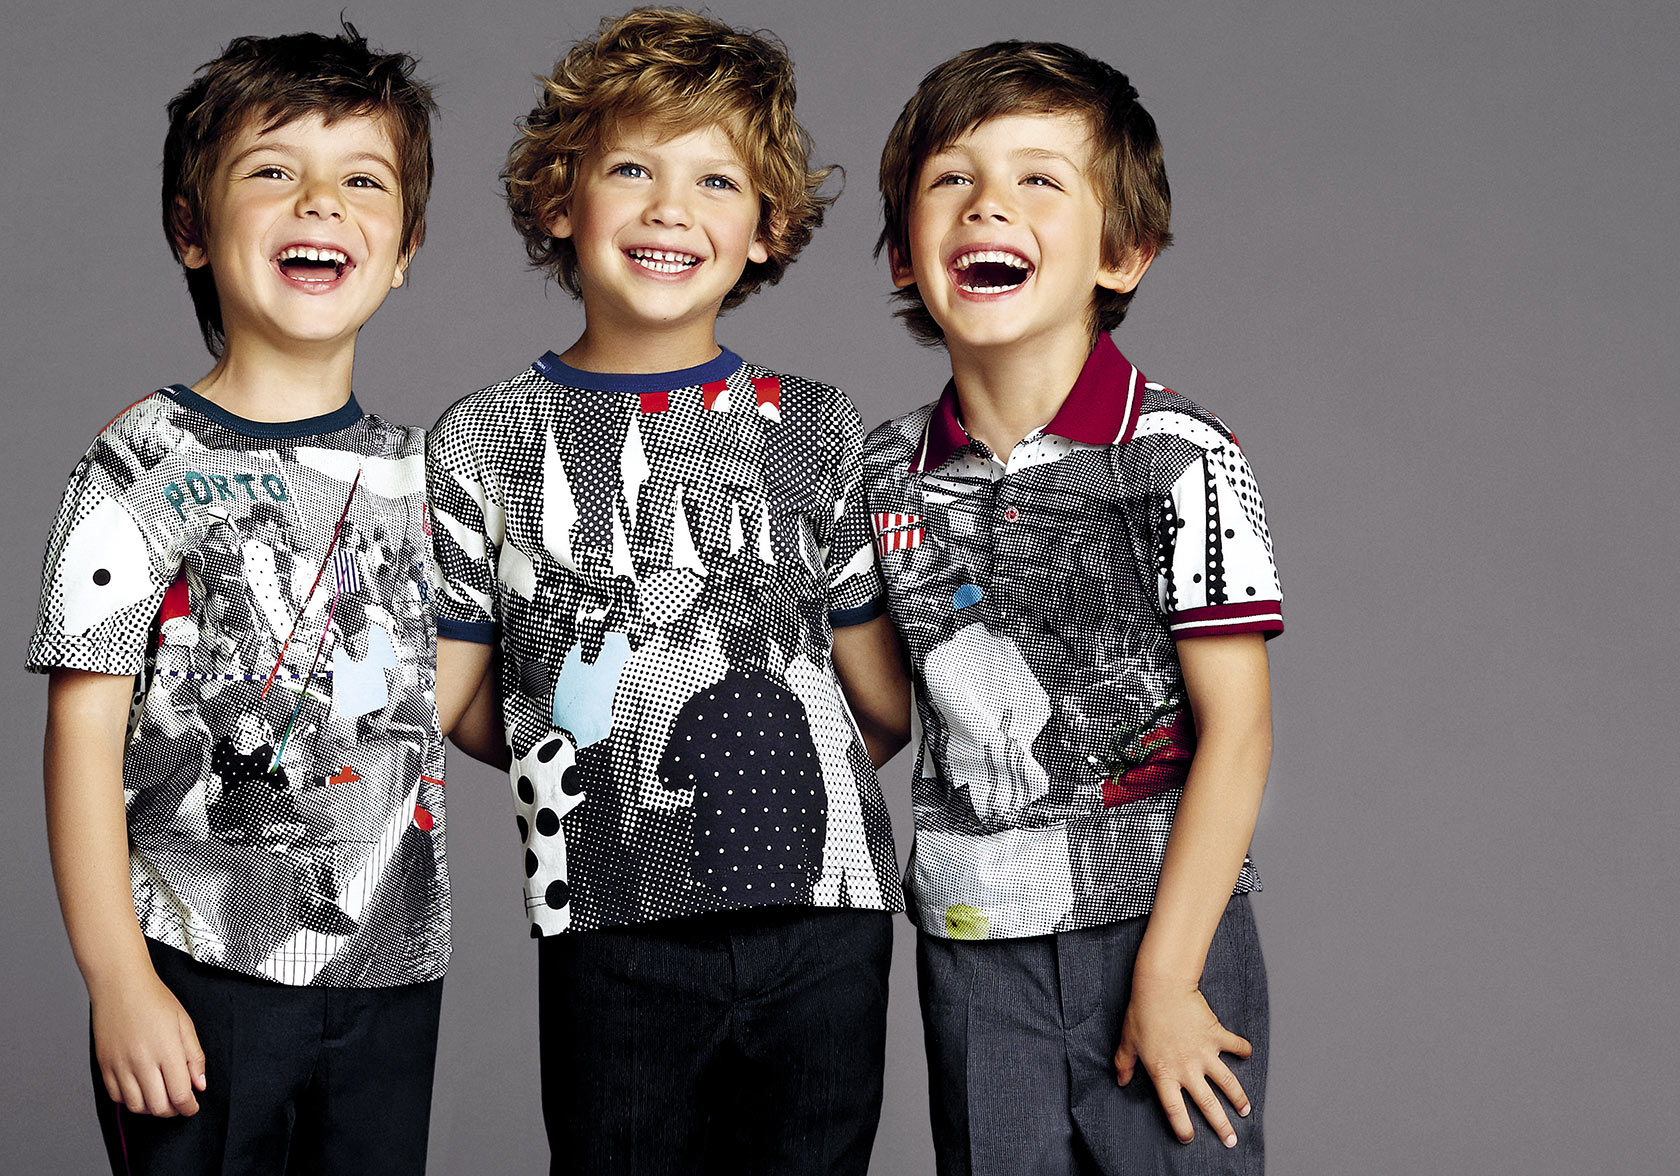 dolce-and-gabbana-summer-2015-child-collection-73-zoom.jpg